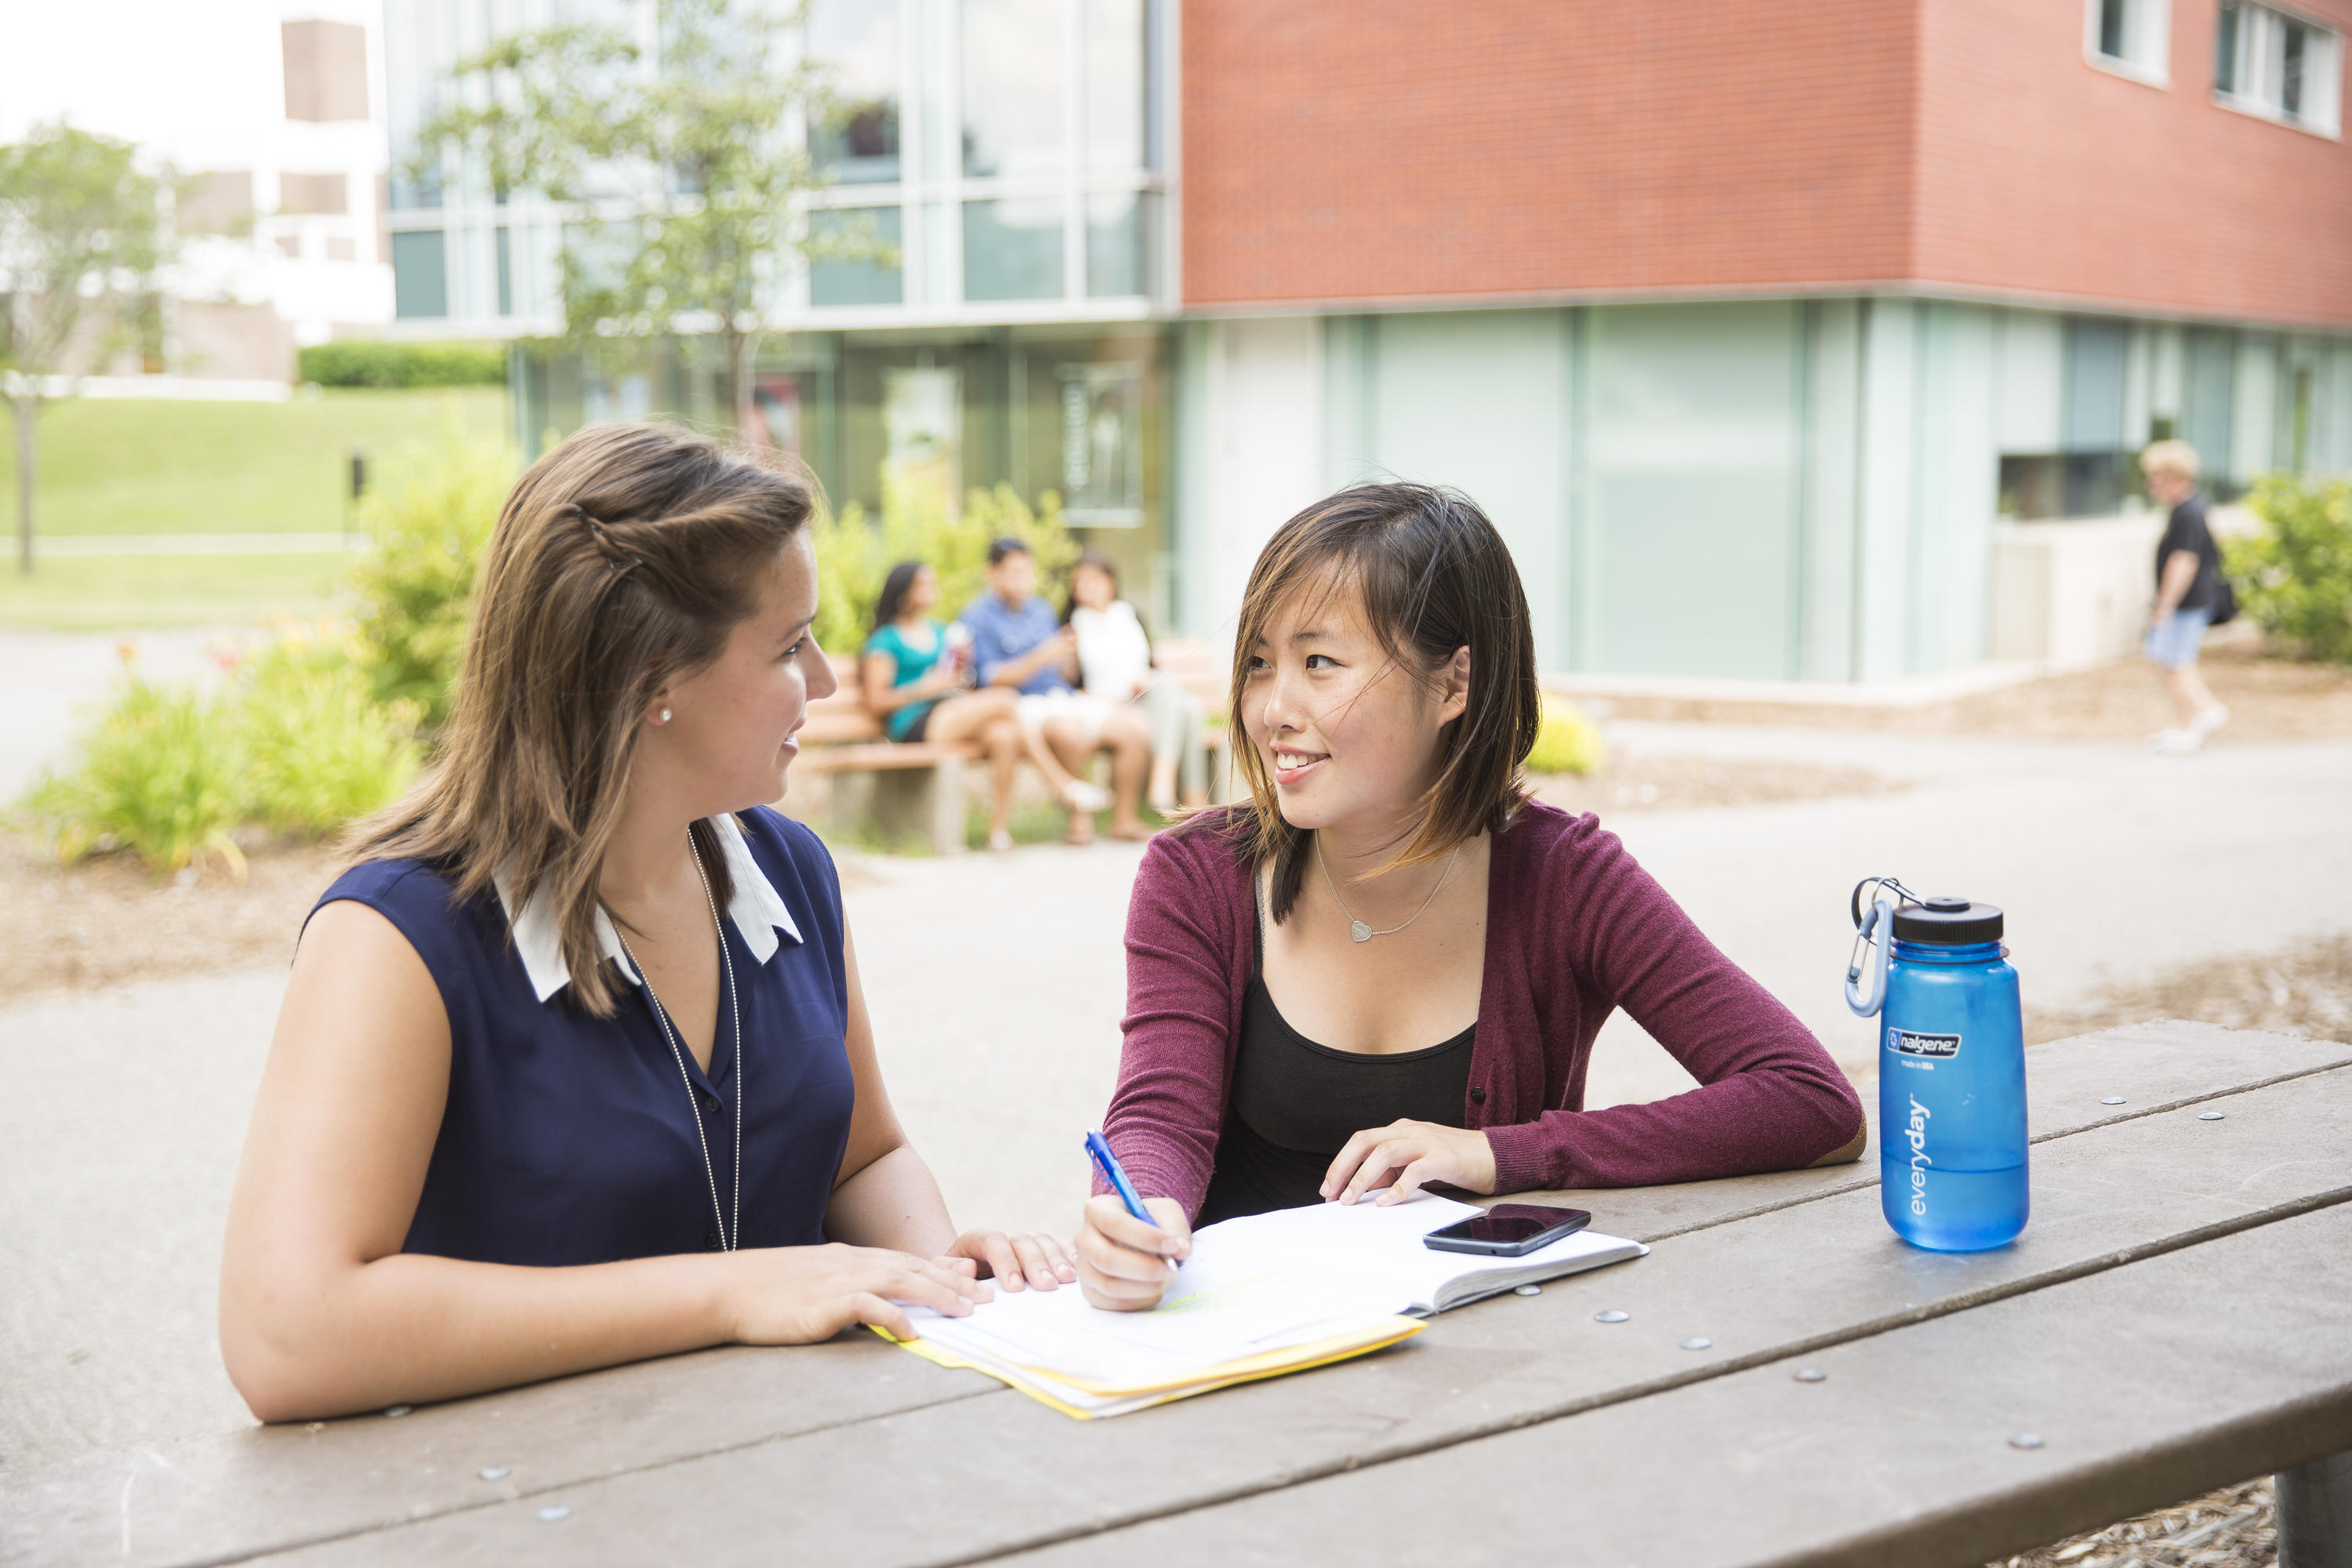 Two students at a picnic table in DP quad area